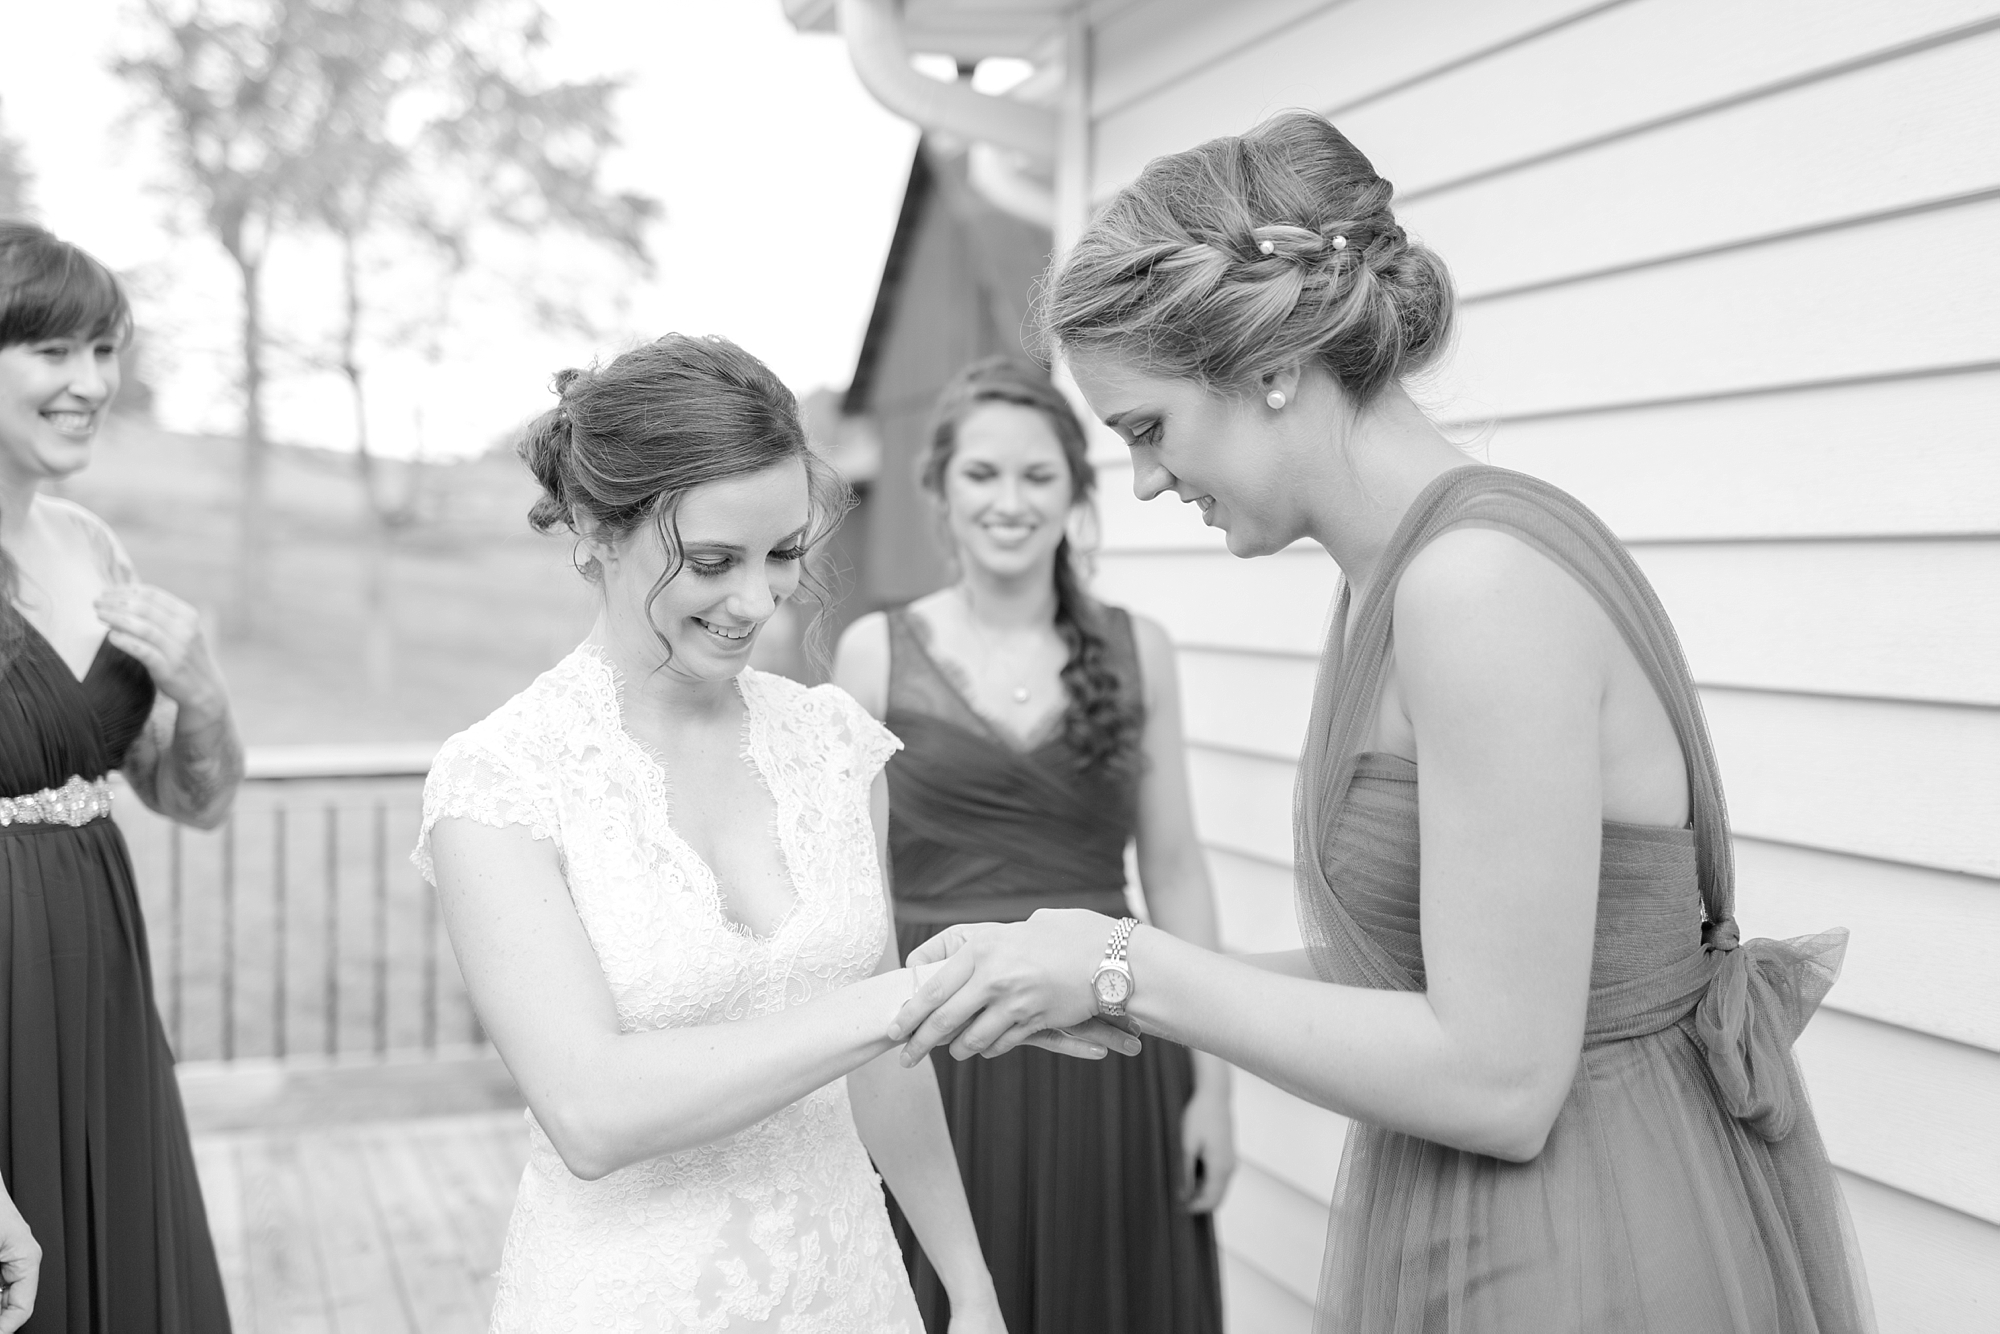 Bird 1. Getting Ready-165_anna grace photography baltimore maryland wedding photographer chanteclaire wedding photo.jpg